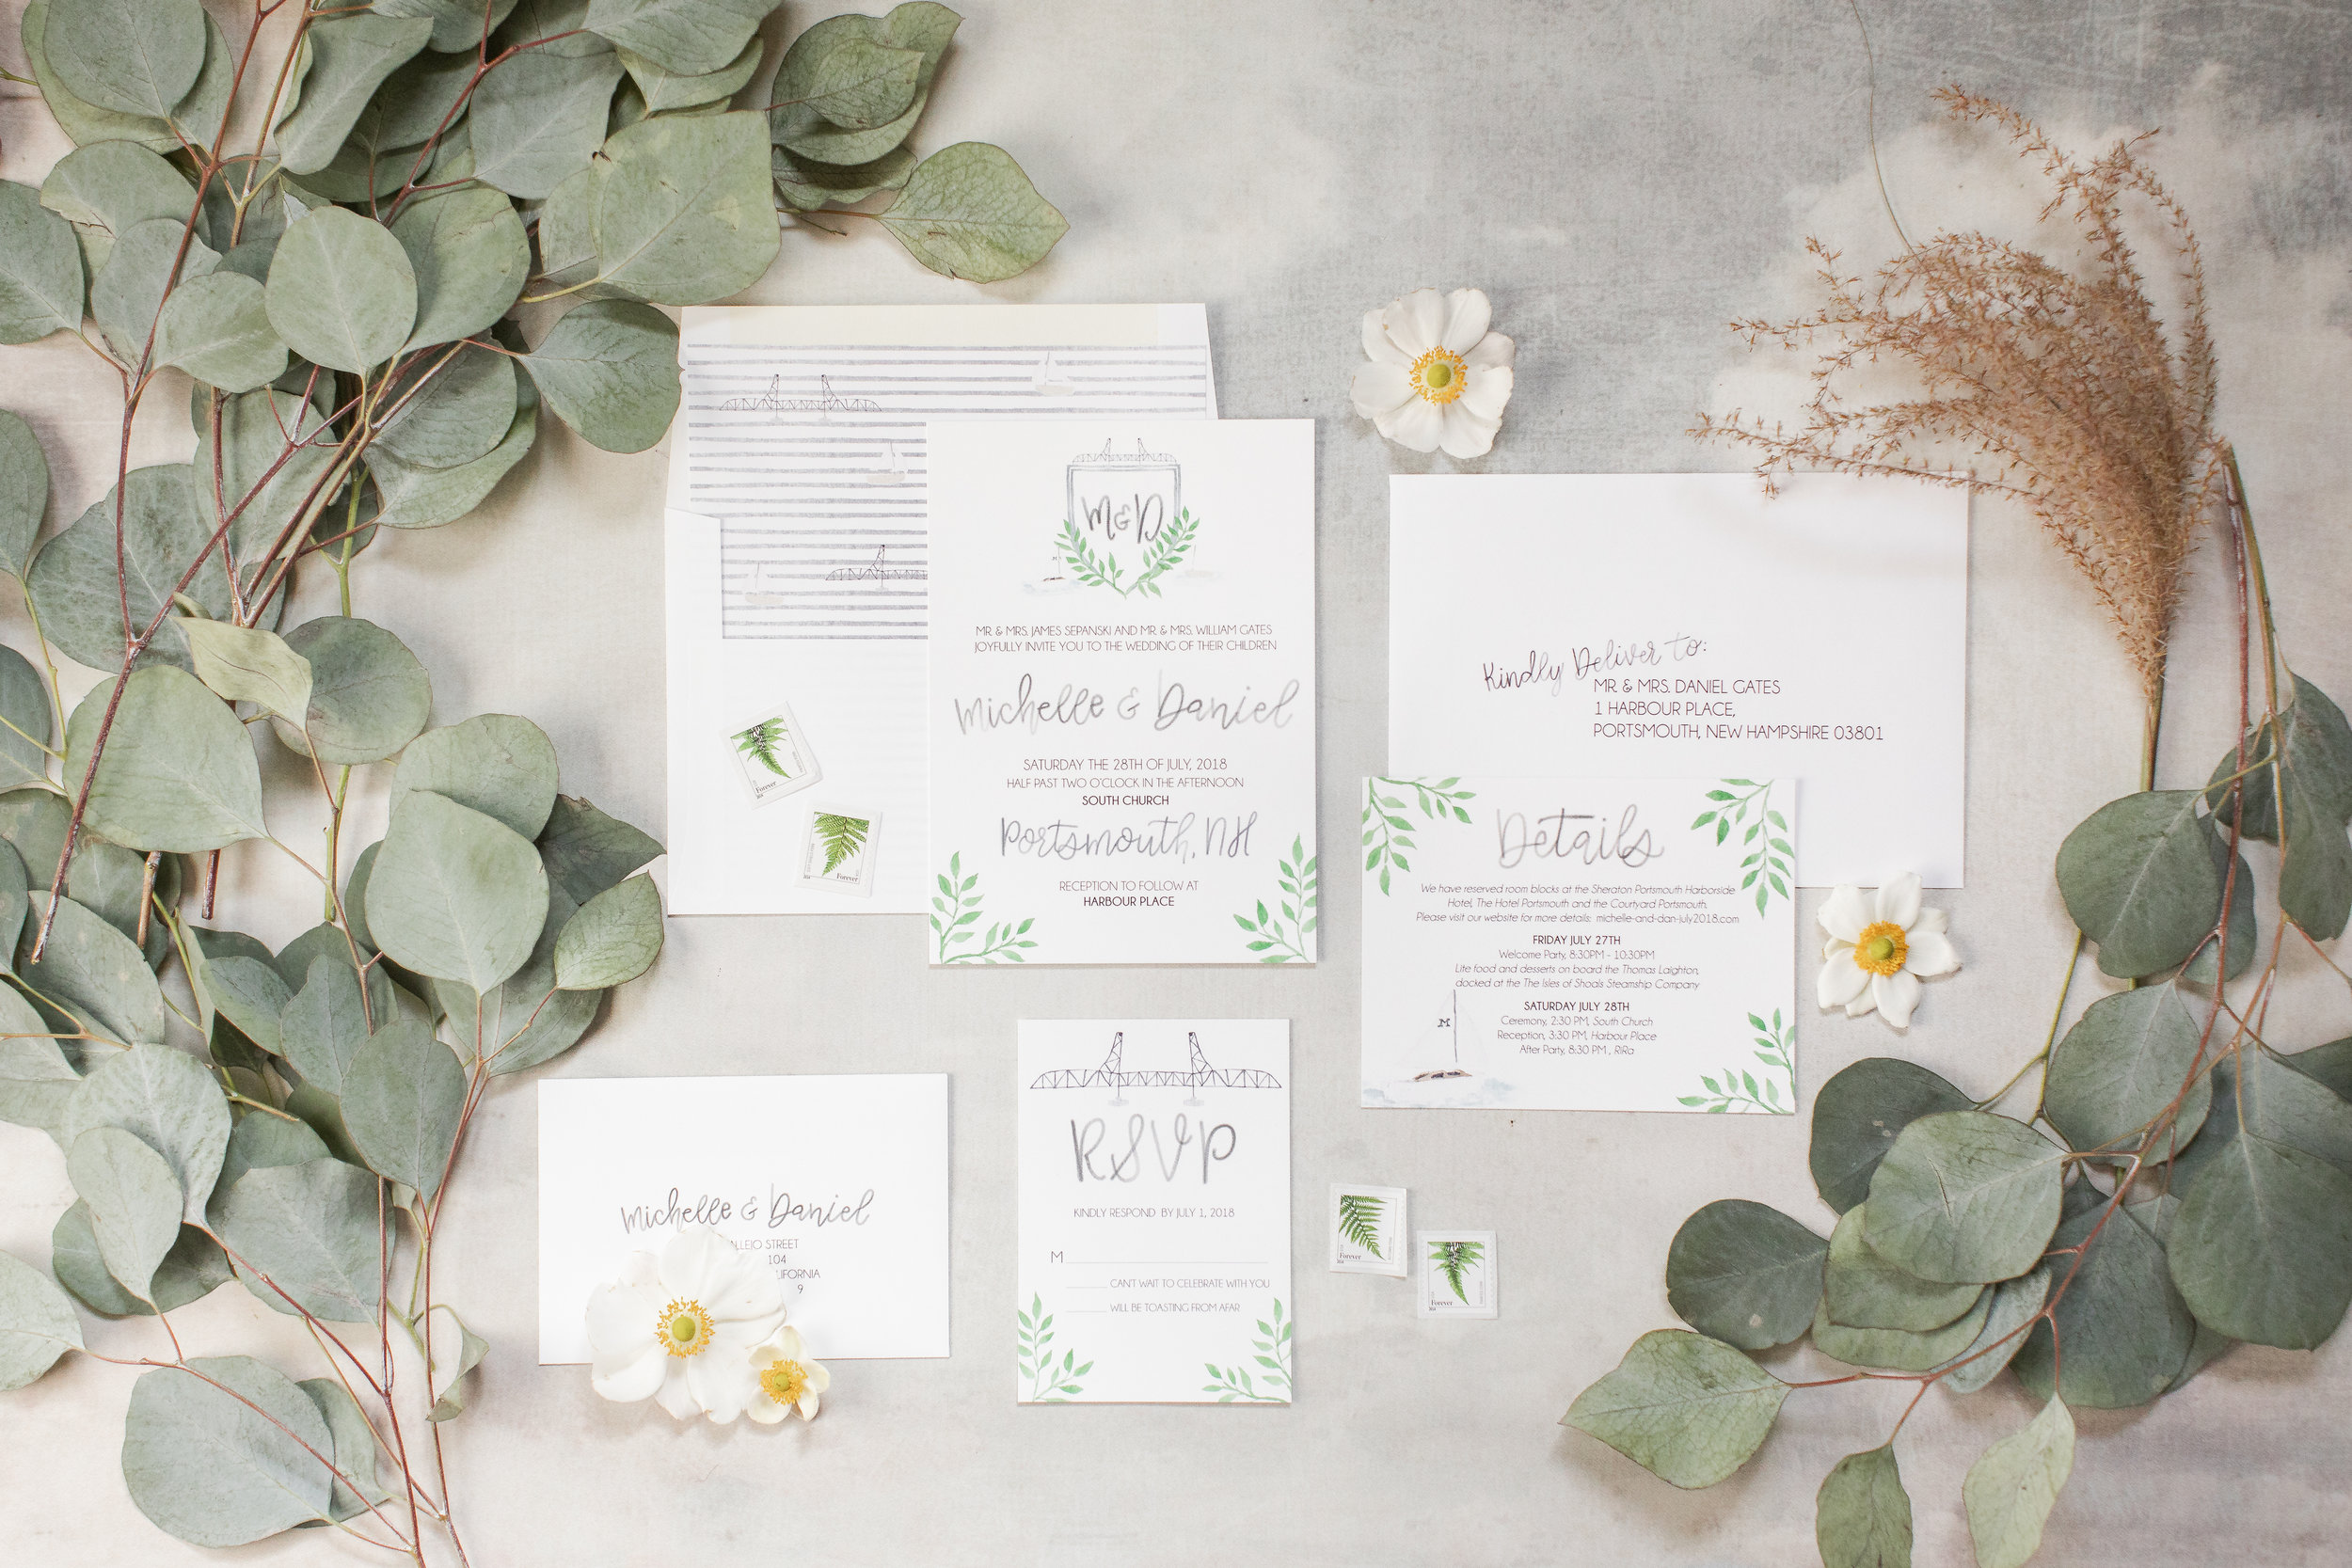 Watercolor wedding invitation for a New Hampshire wedding